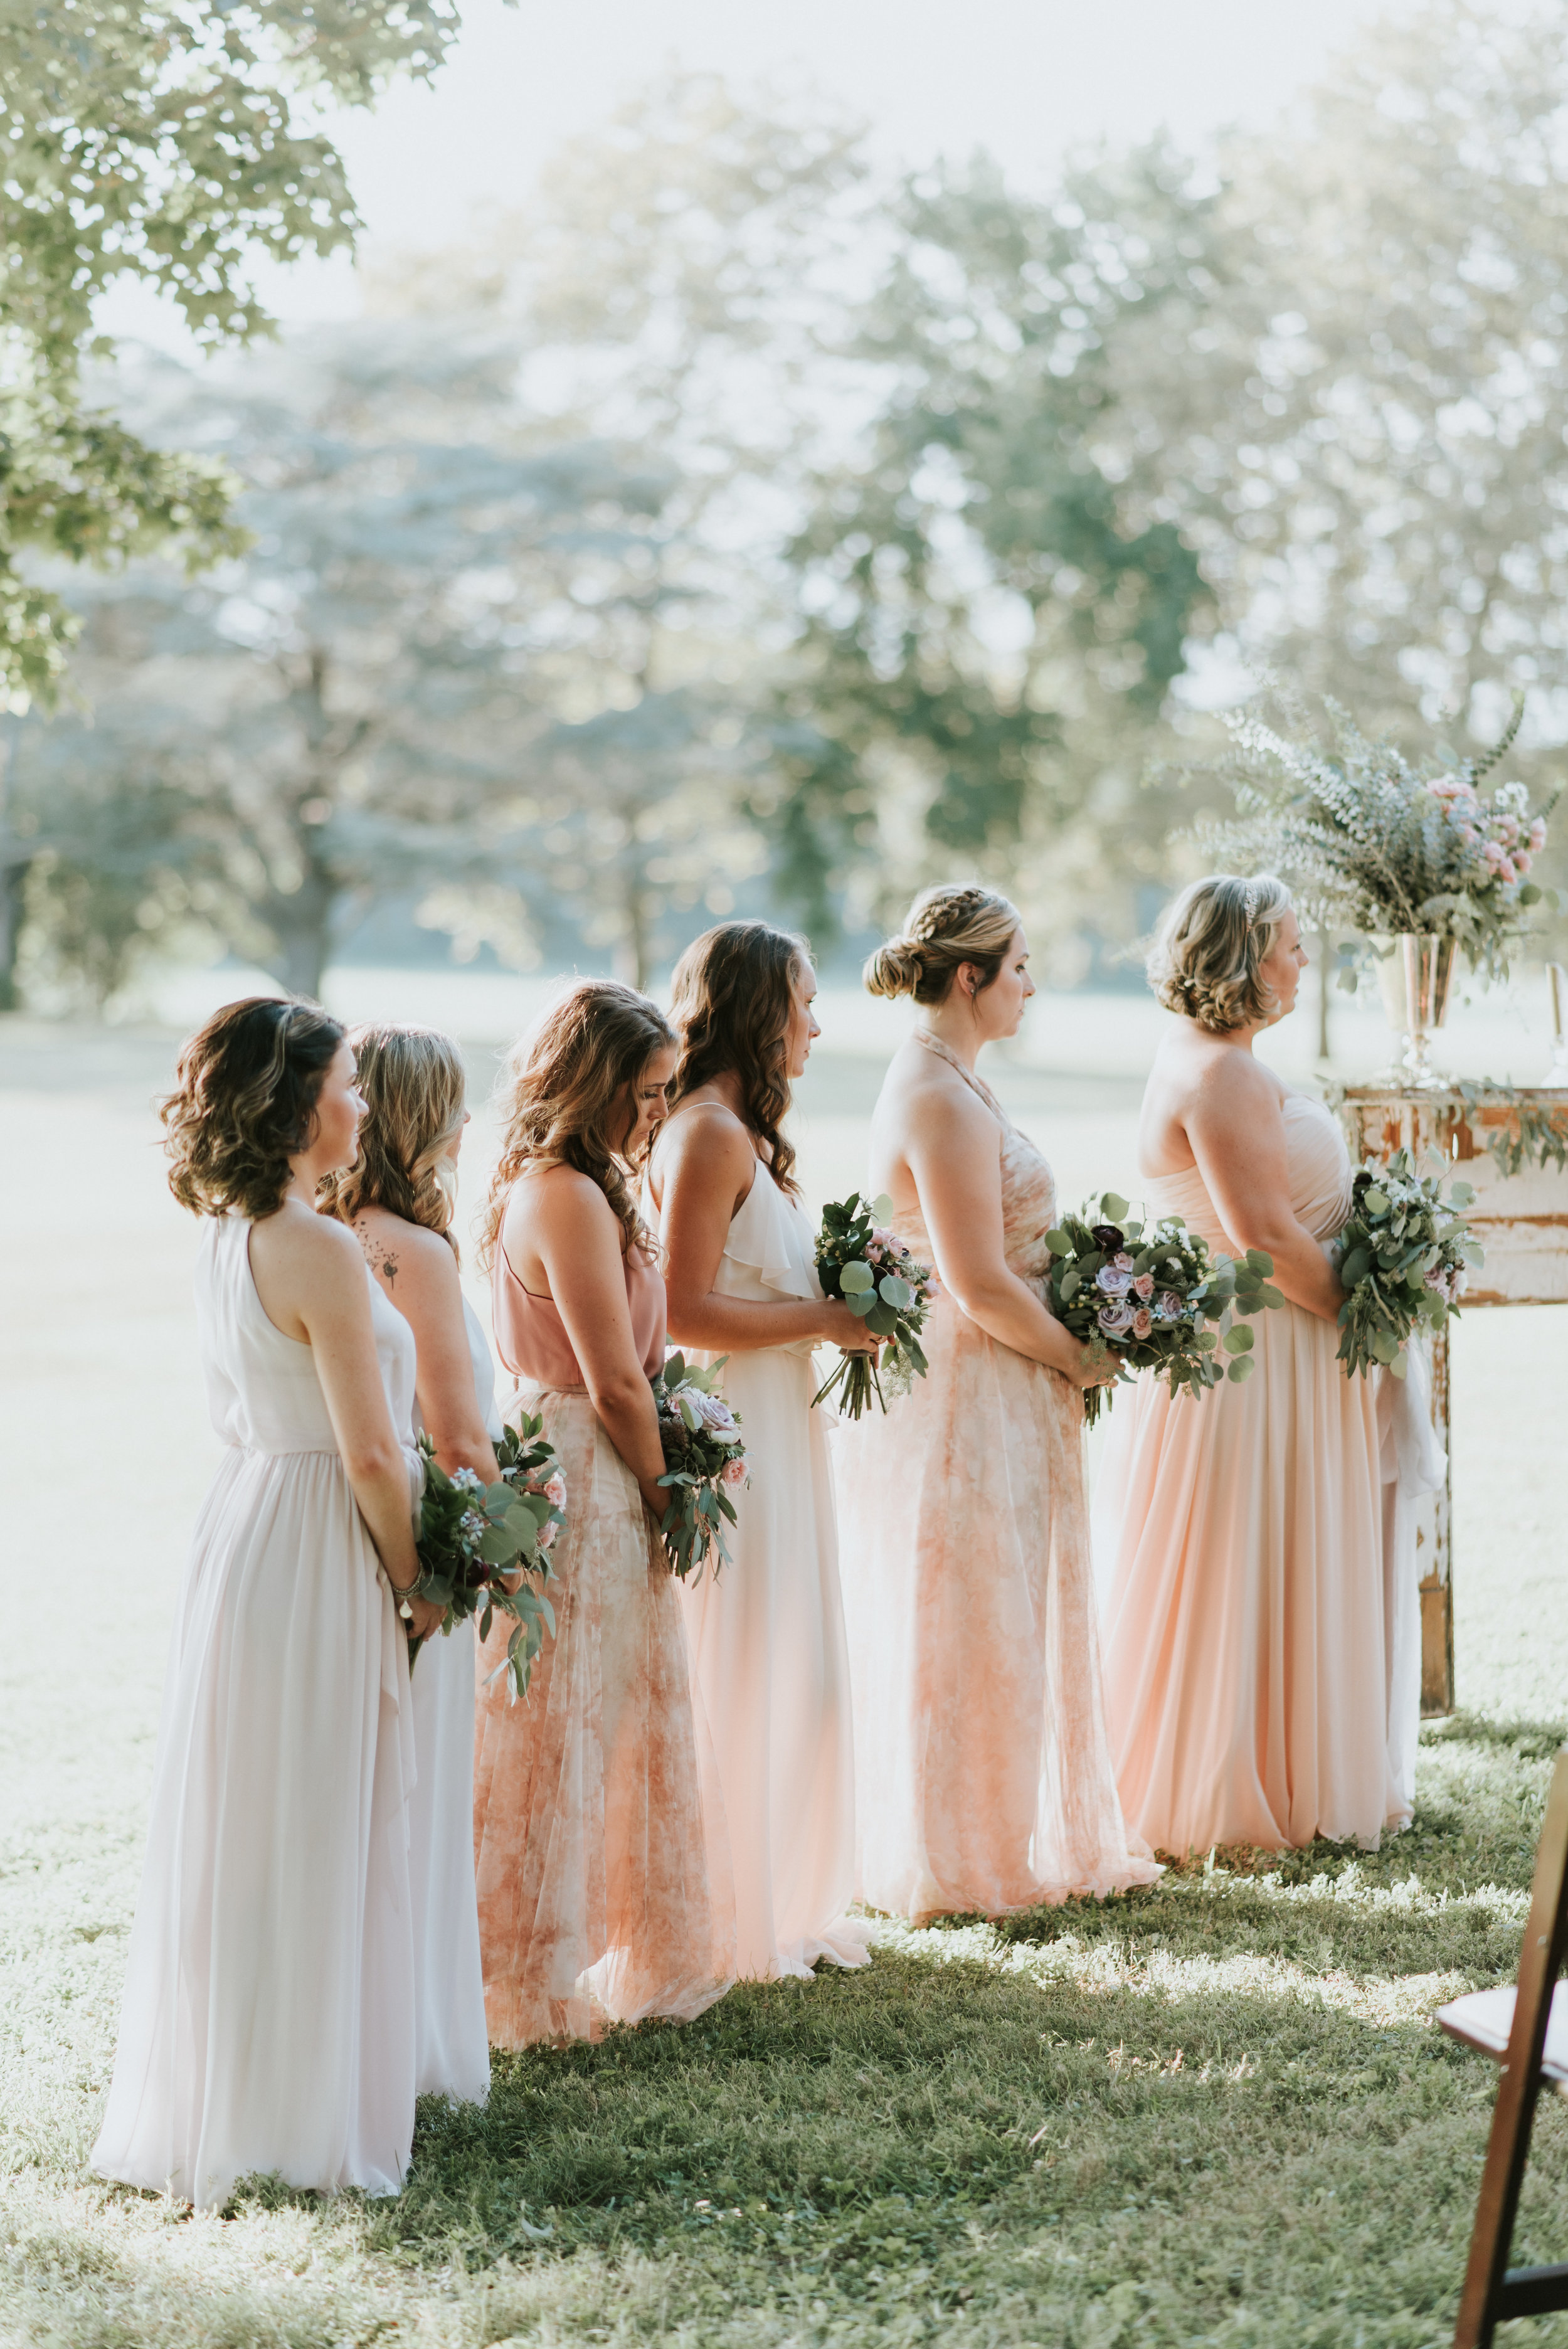 Rustic Oyster Themed Eastern Shore Maryland Outdoor Wedding by East Made Event Company Wedding Planner and Bekah Kay Creative776.jpg